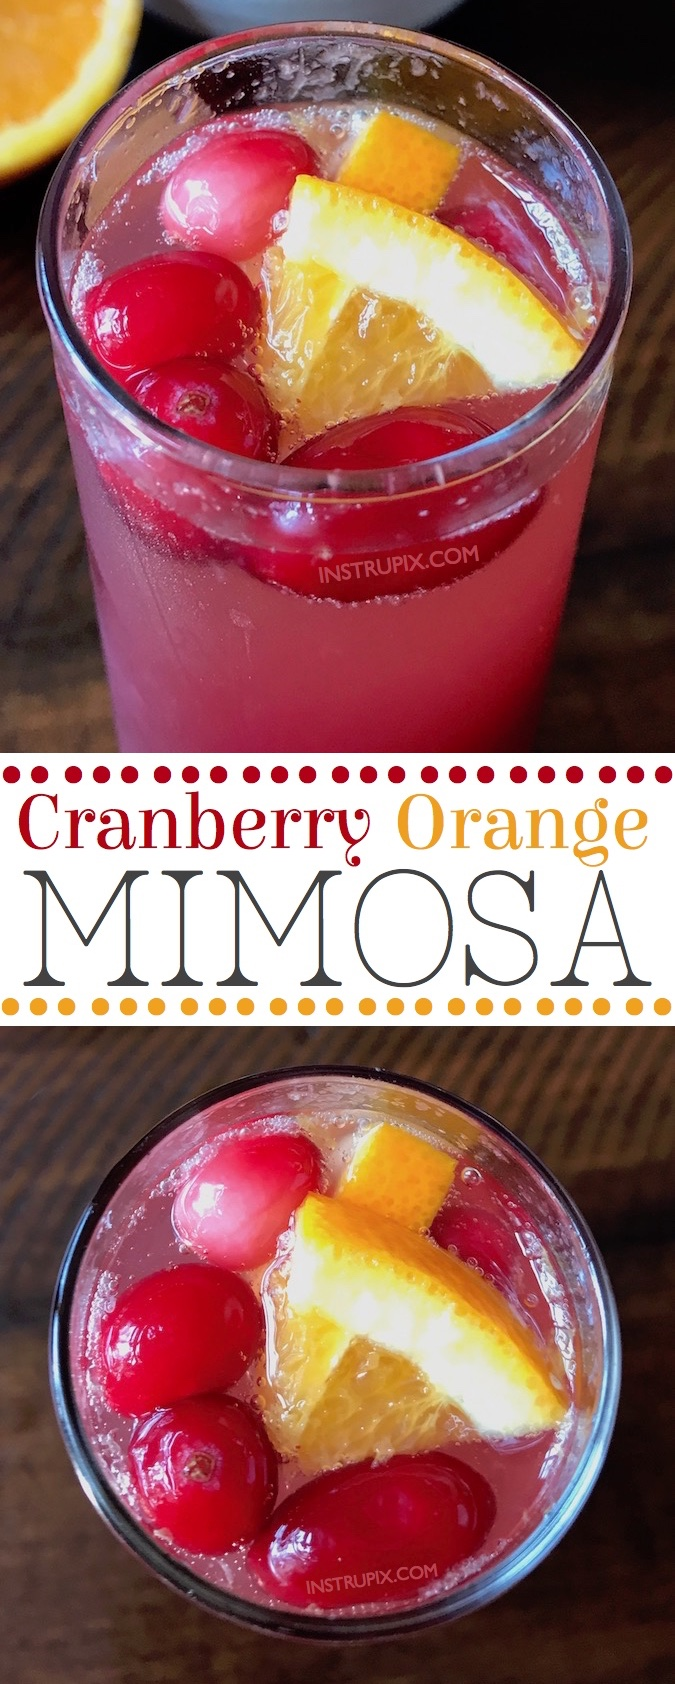 This easy 3 Ingredient mimosa recipe is perfect for the holidays (Christmas morning!!) or even a mimosa bar party! It's made with just champagne, cranberry juice and orange juice. Simple idea! Instrupix.com